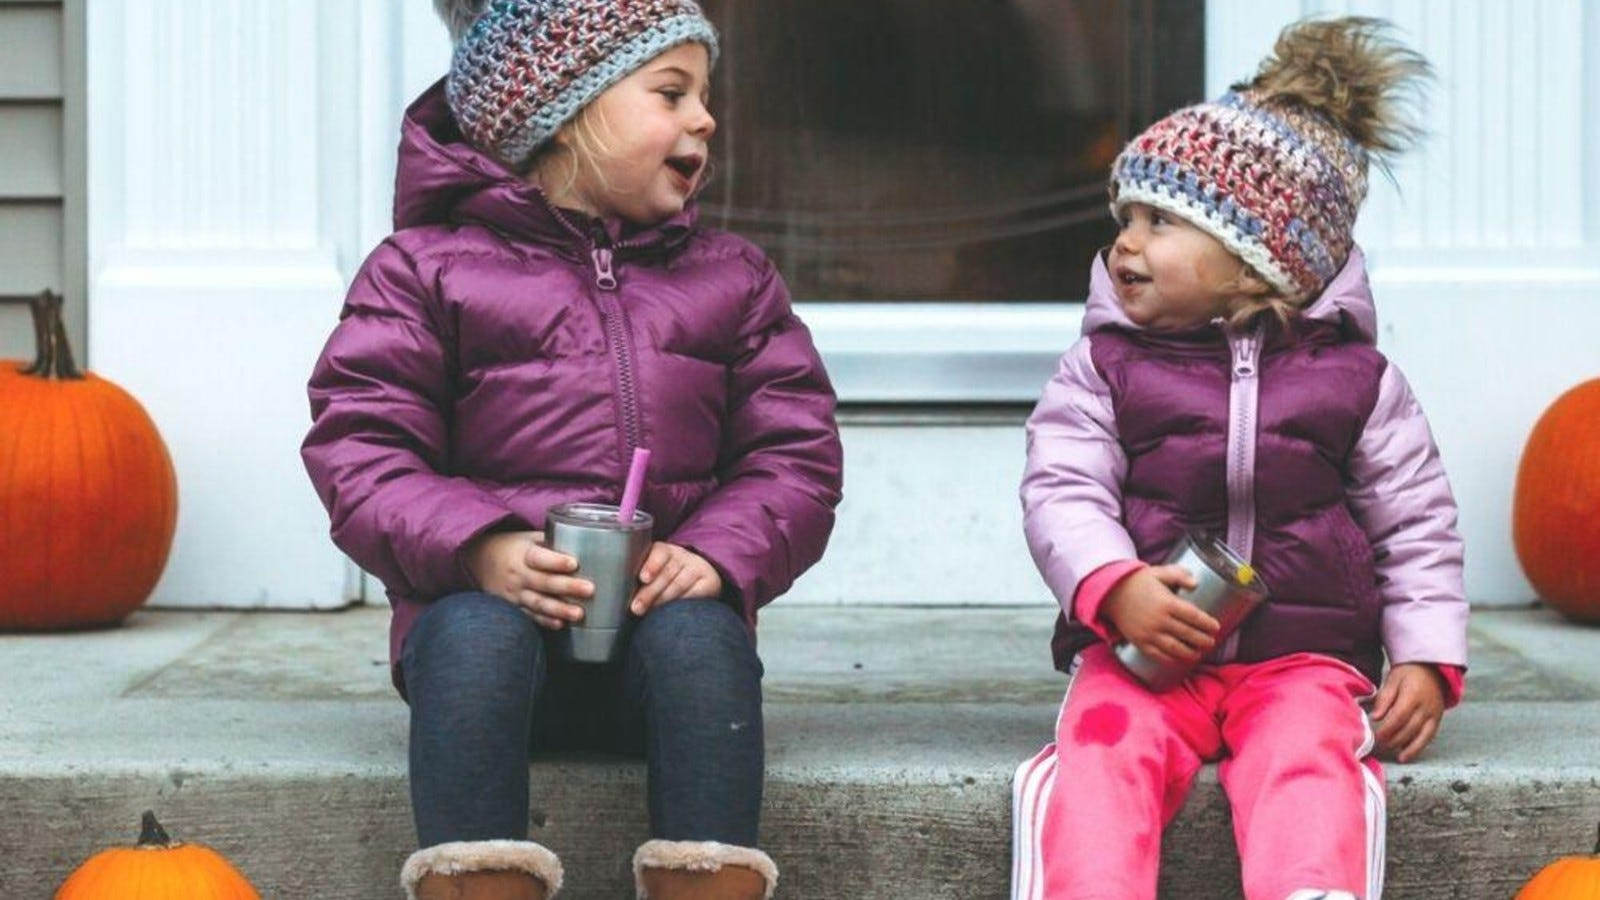 two toddler girls in winter coats